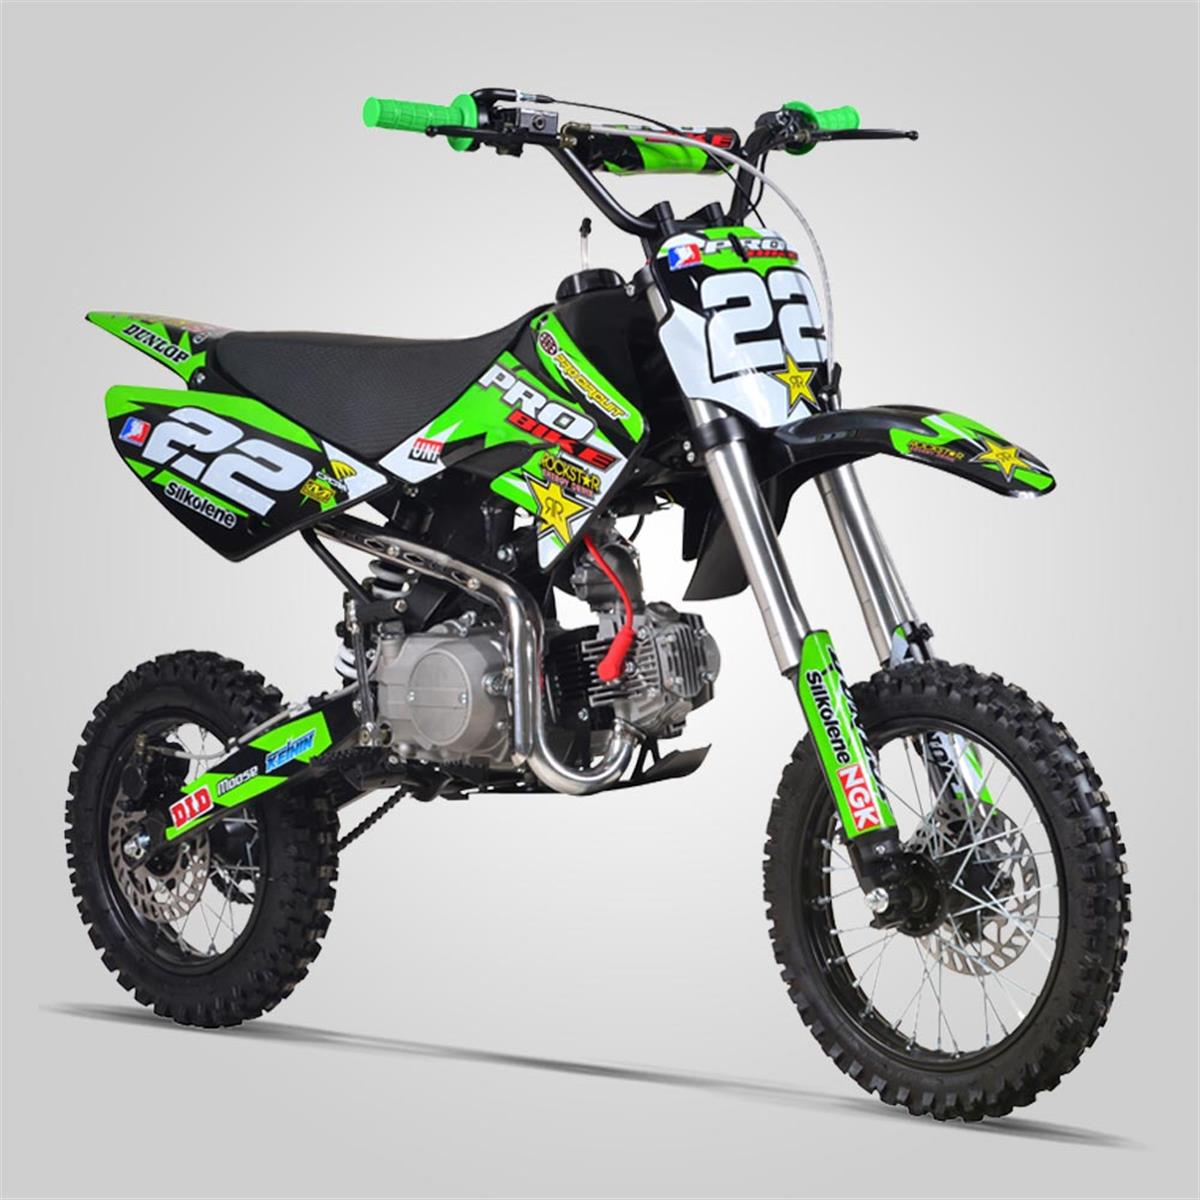 dirt bike 125cc probike s en 12 14 2017 smallmx dirt bike pit bike quads minimoto. Black Bedroom Furniture Sets. Home Design Ideas